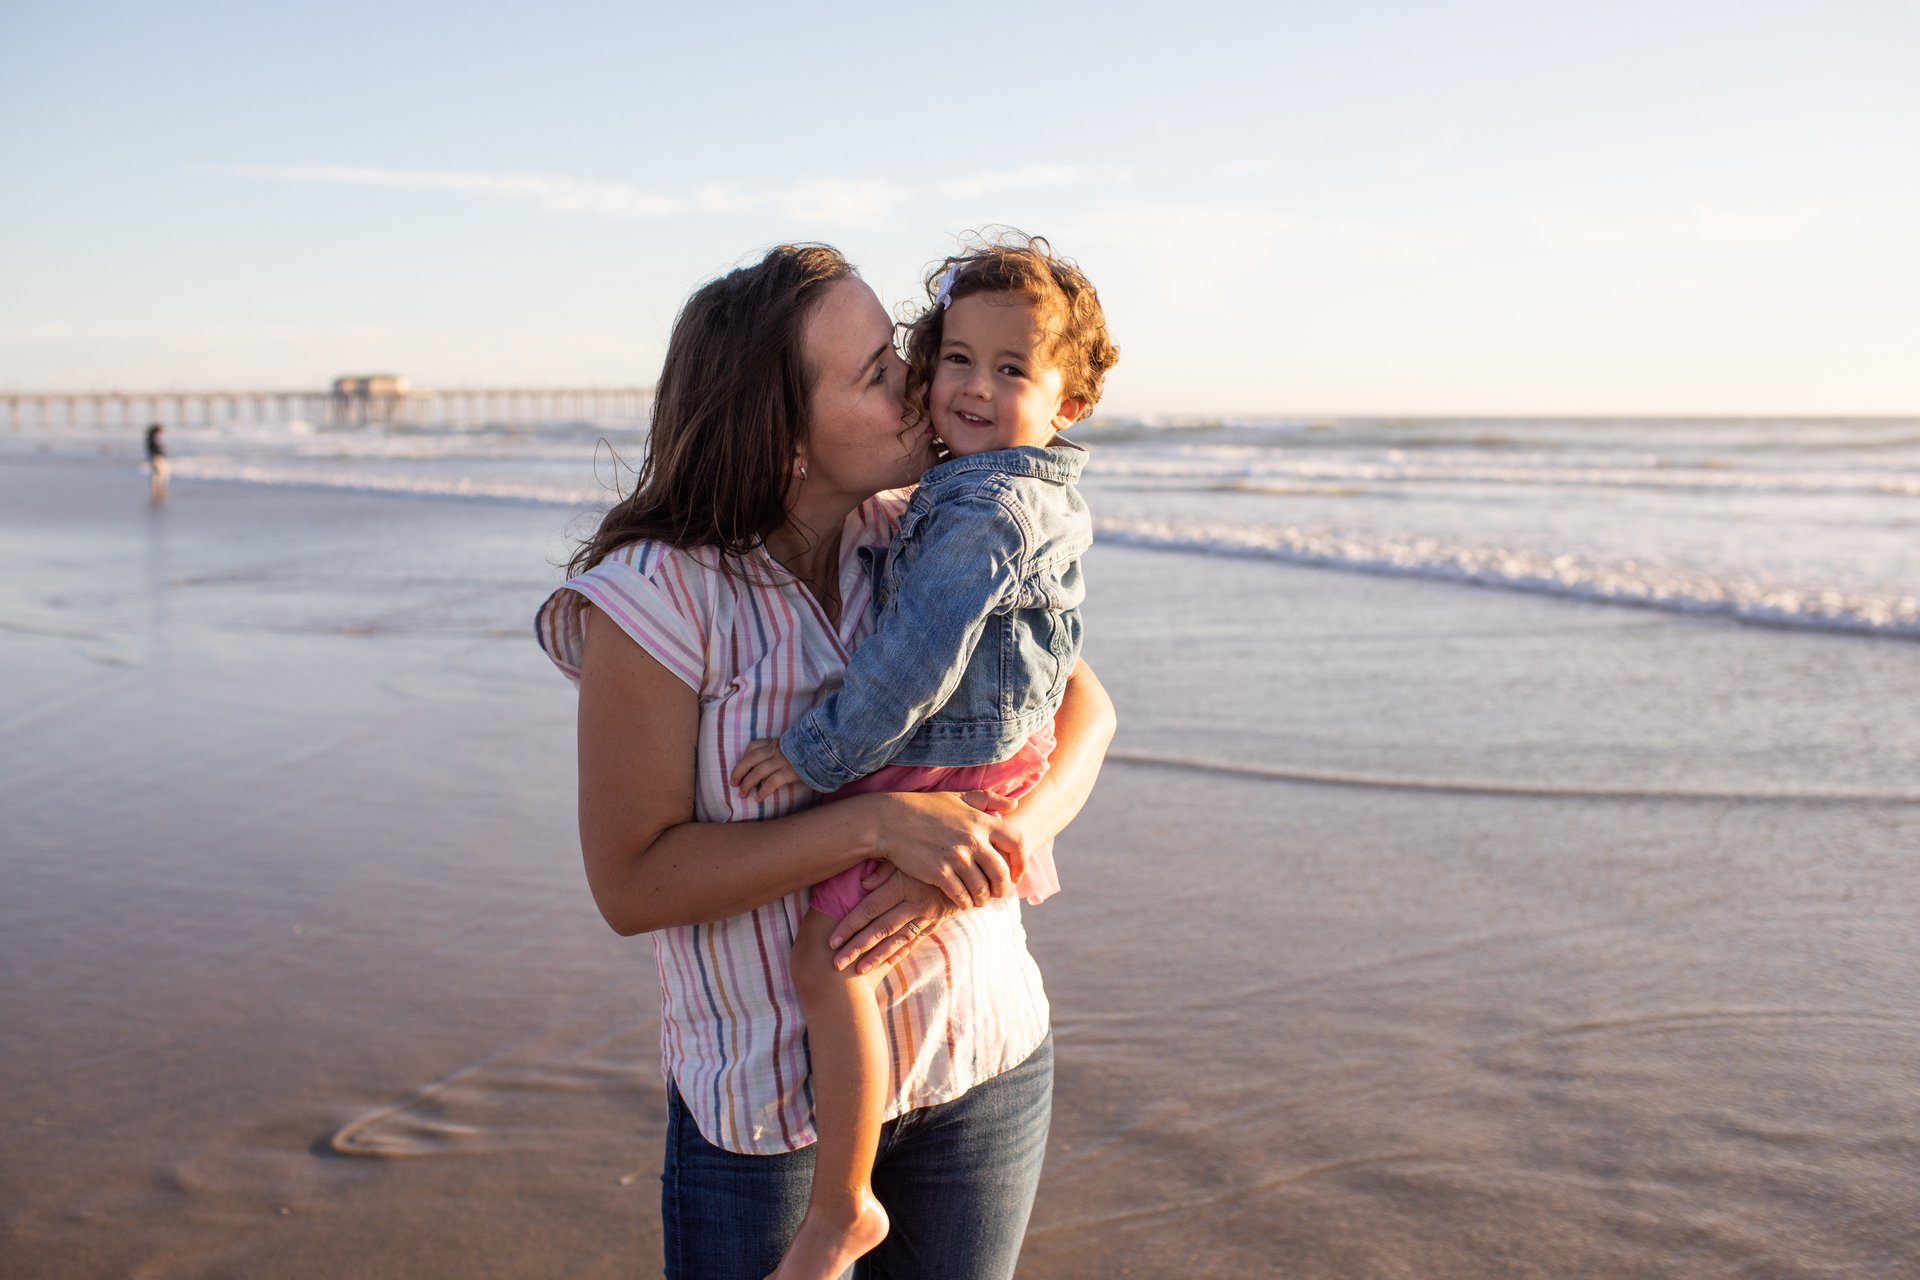 Flytographer Travel Story - 40th inSoCal